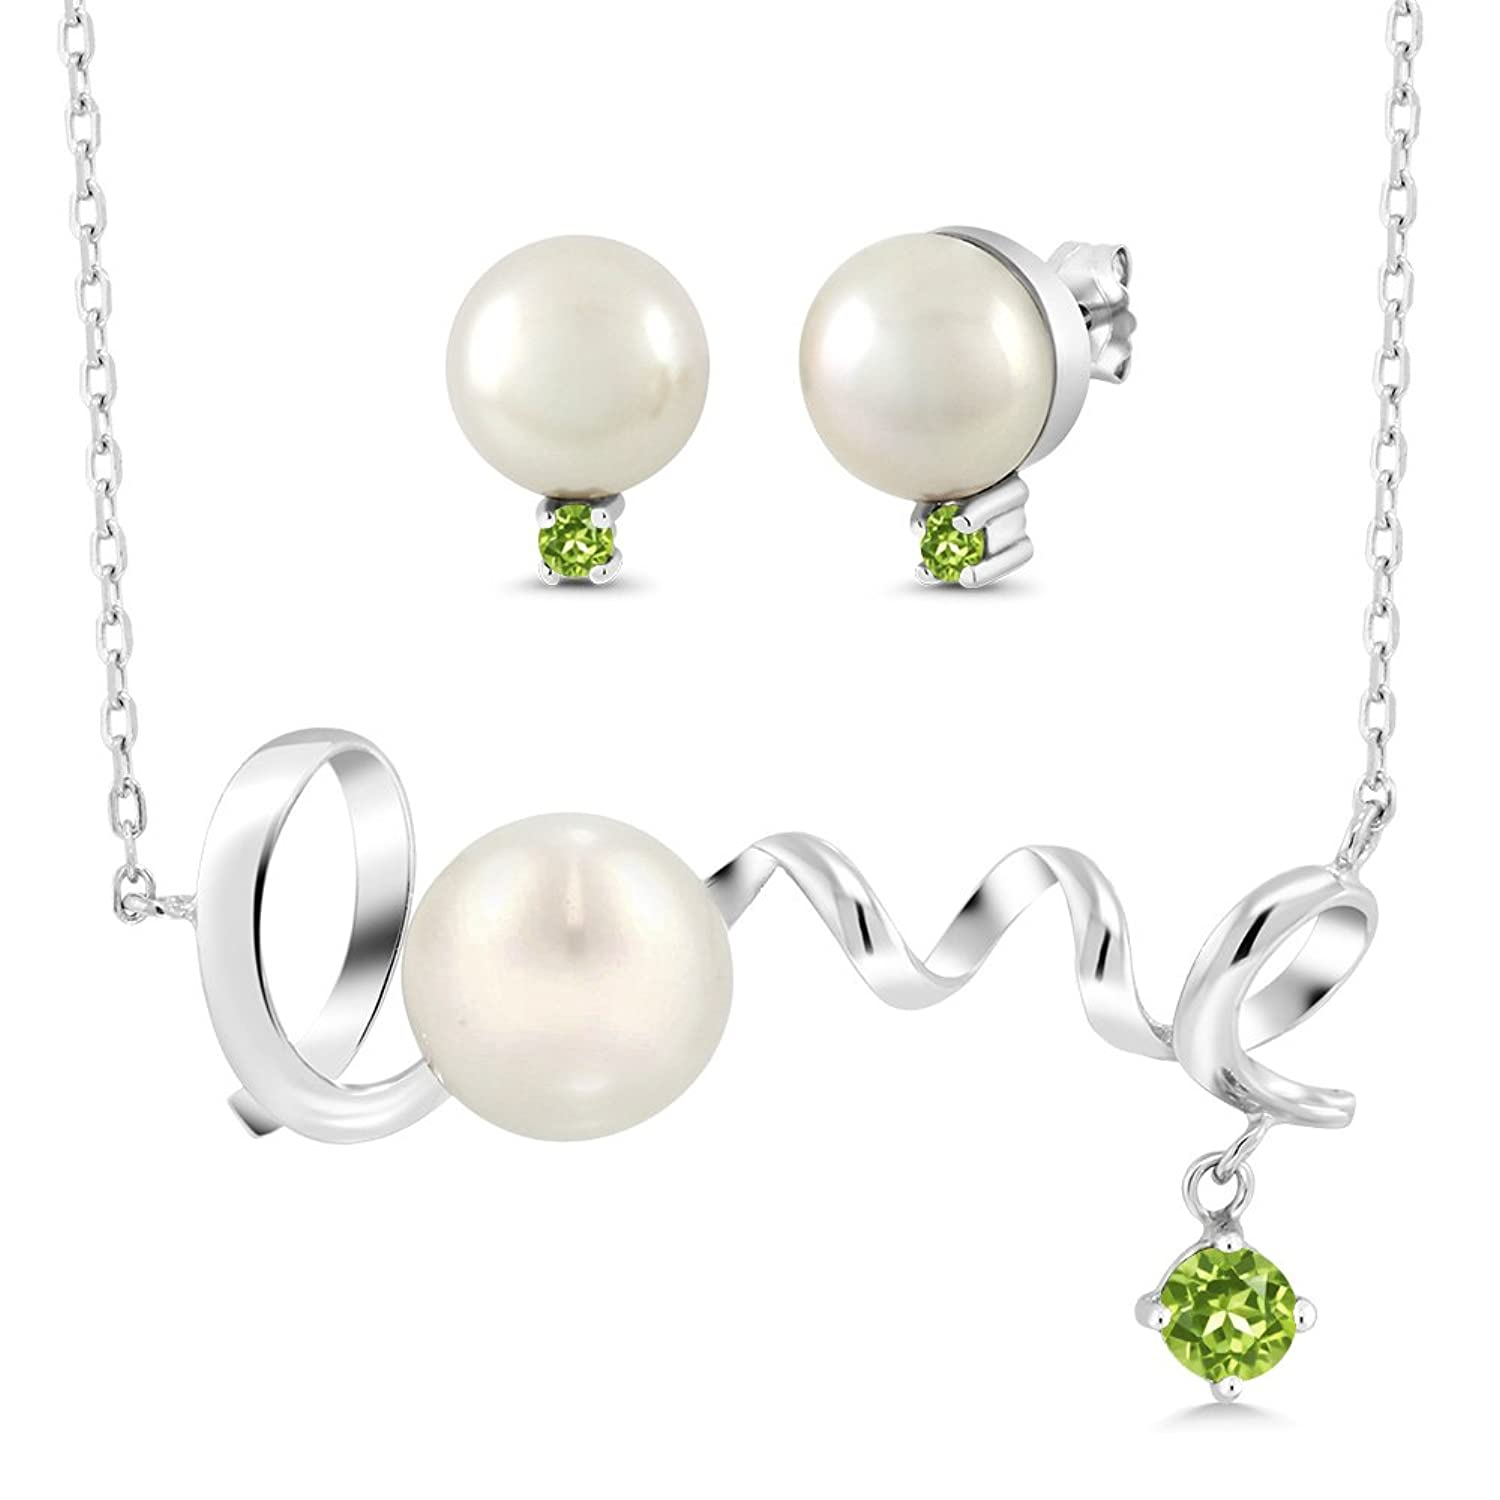 0.59 Ct Round Green Peridot 925 Sterling Silver Pearl Pendant Earrings Set